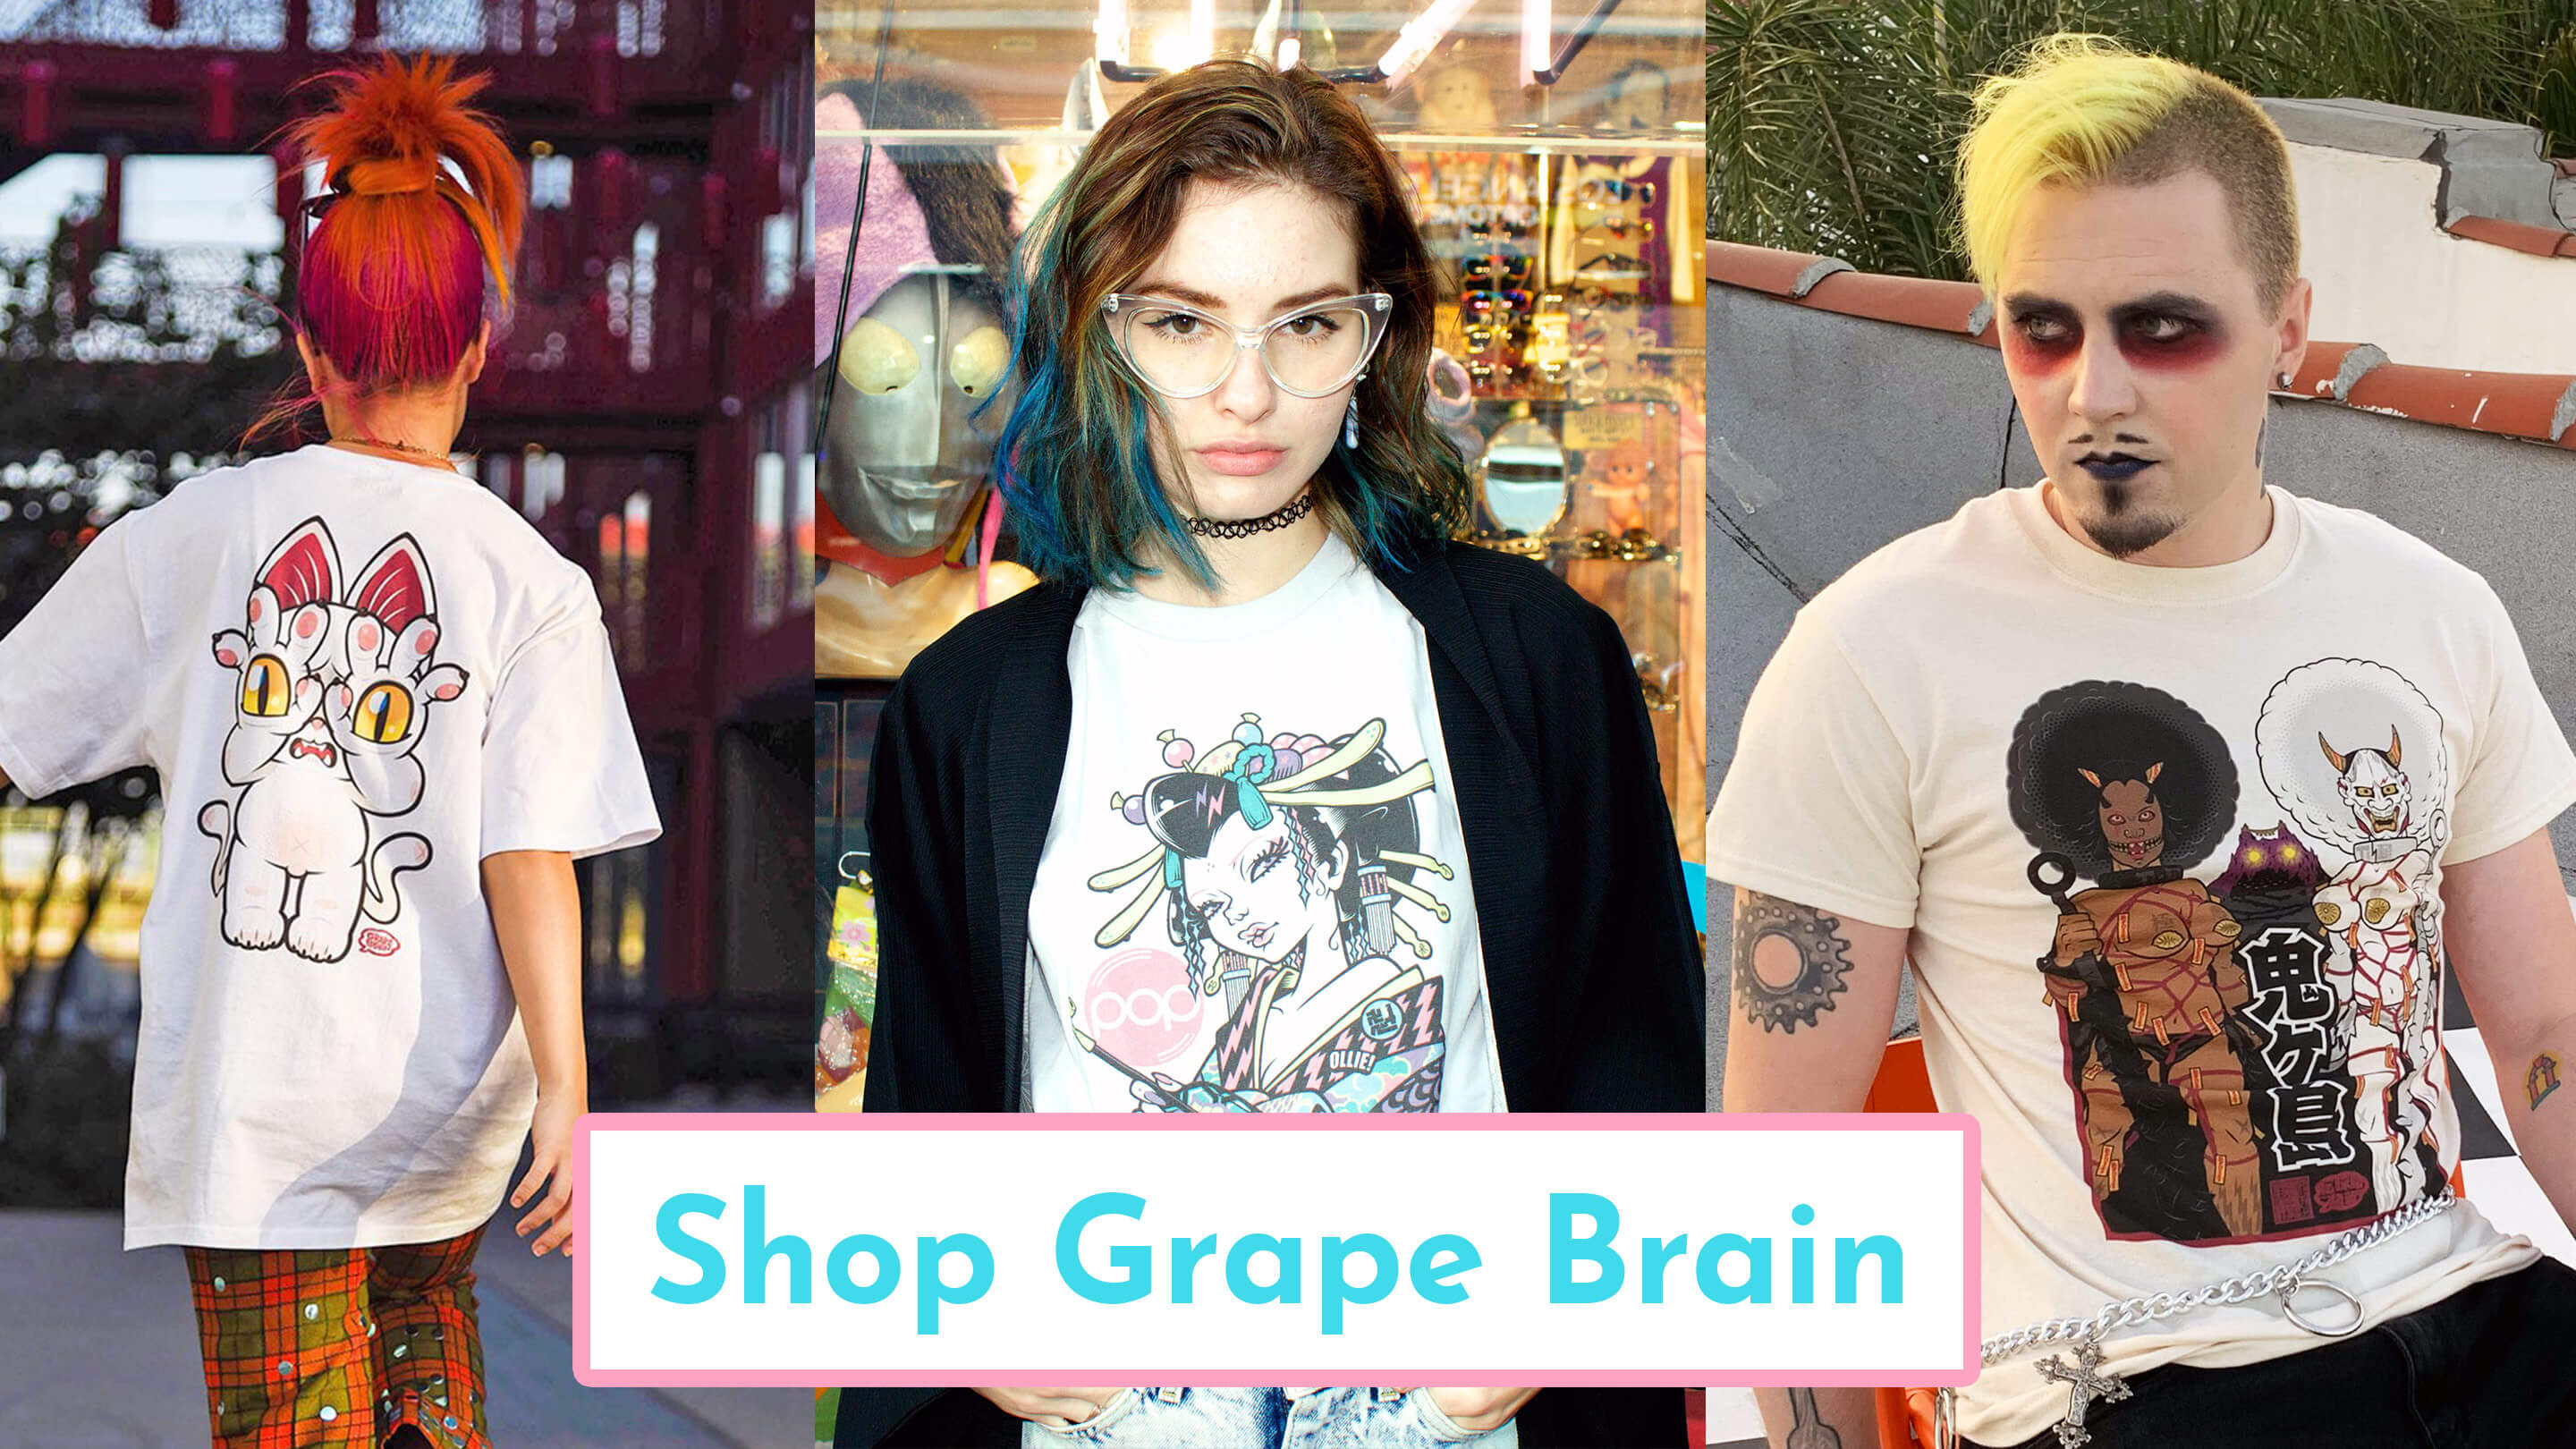 Shop Grape Brain